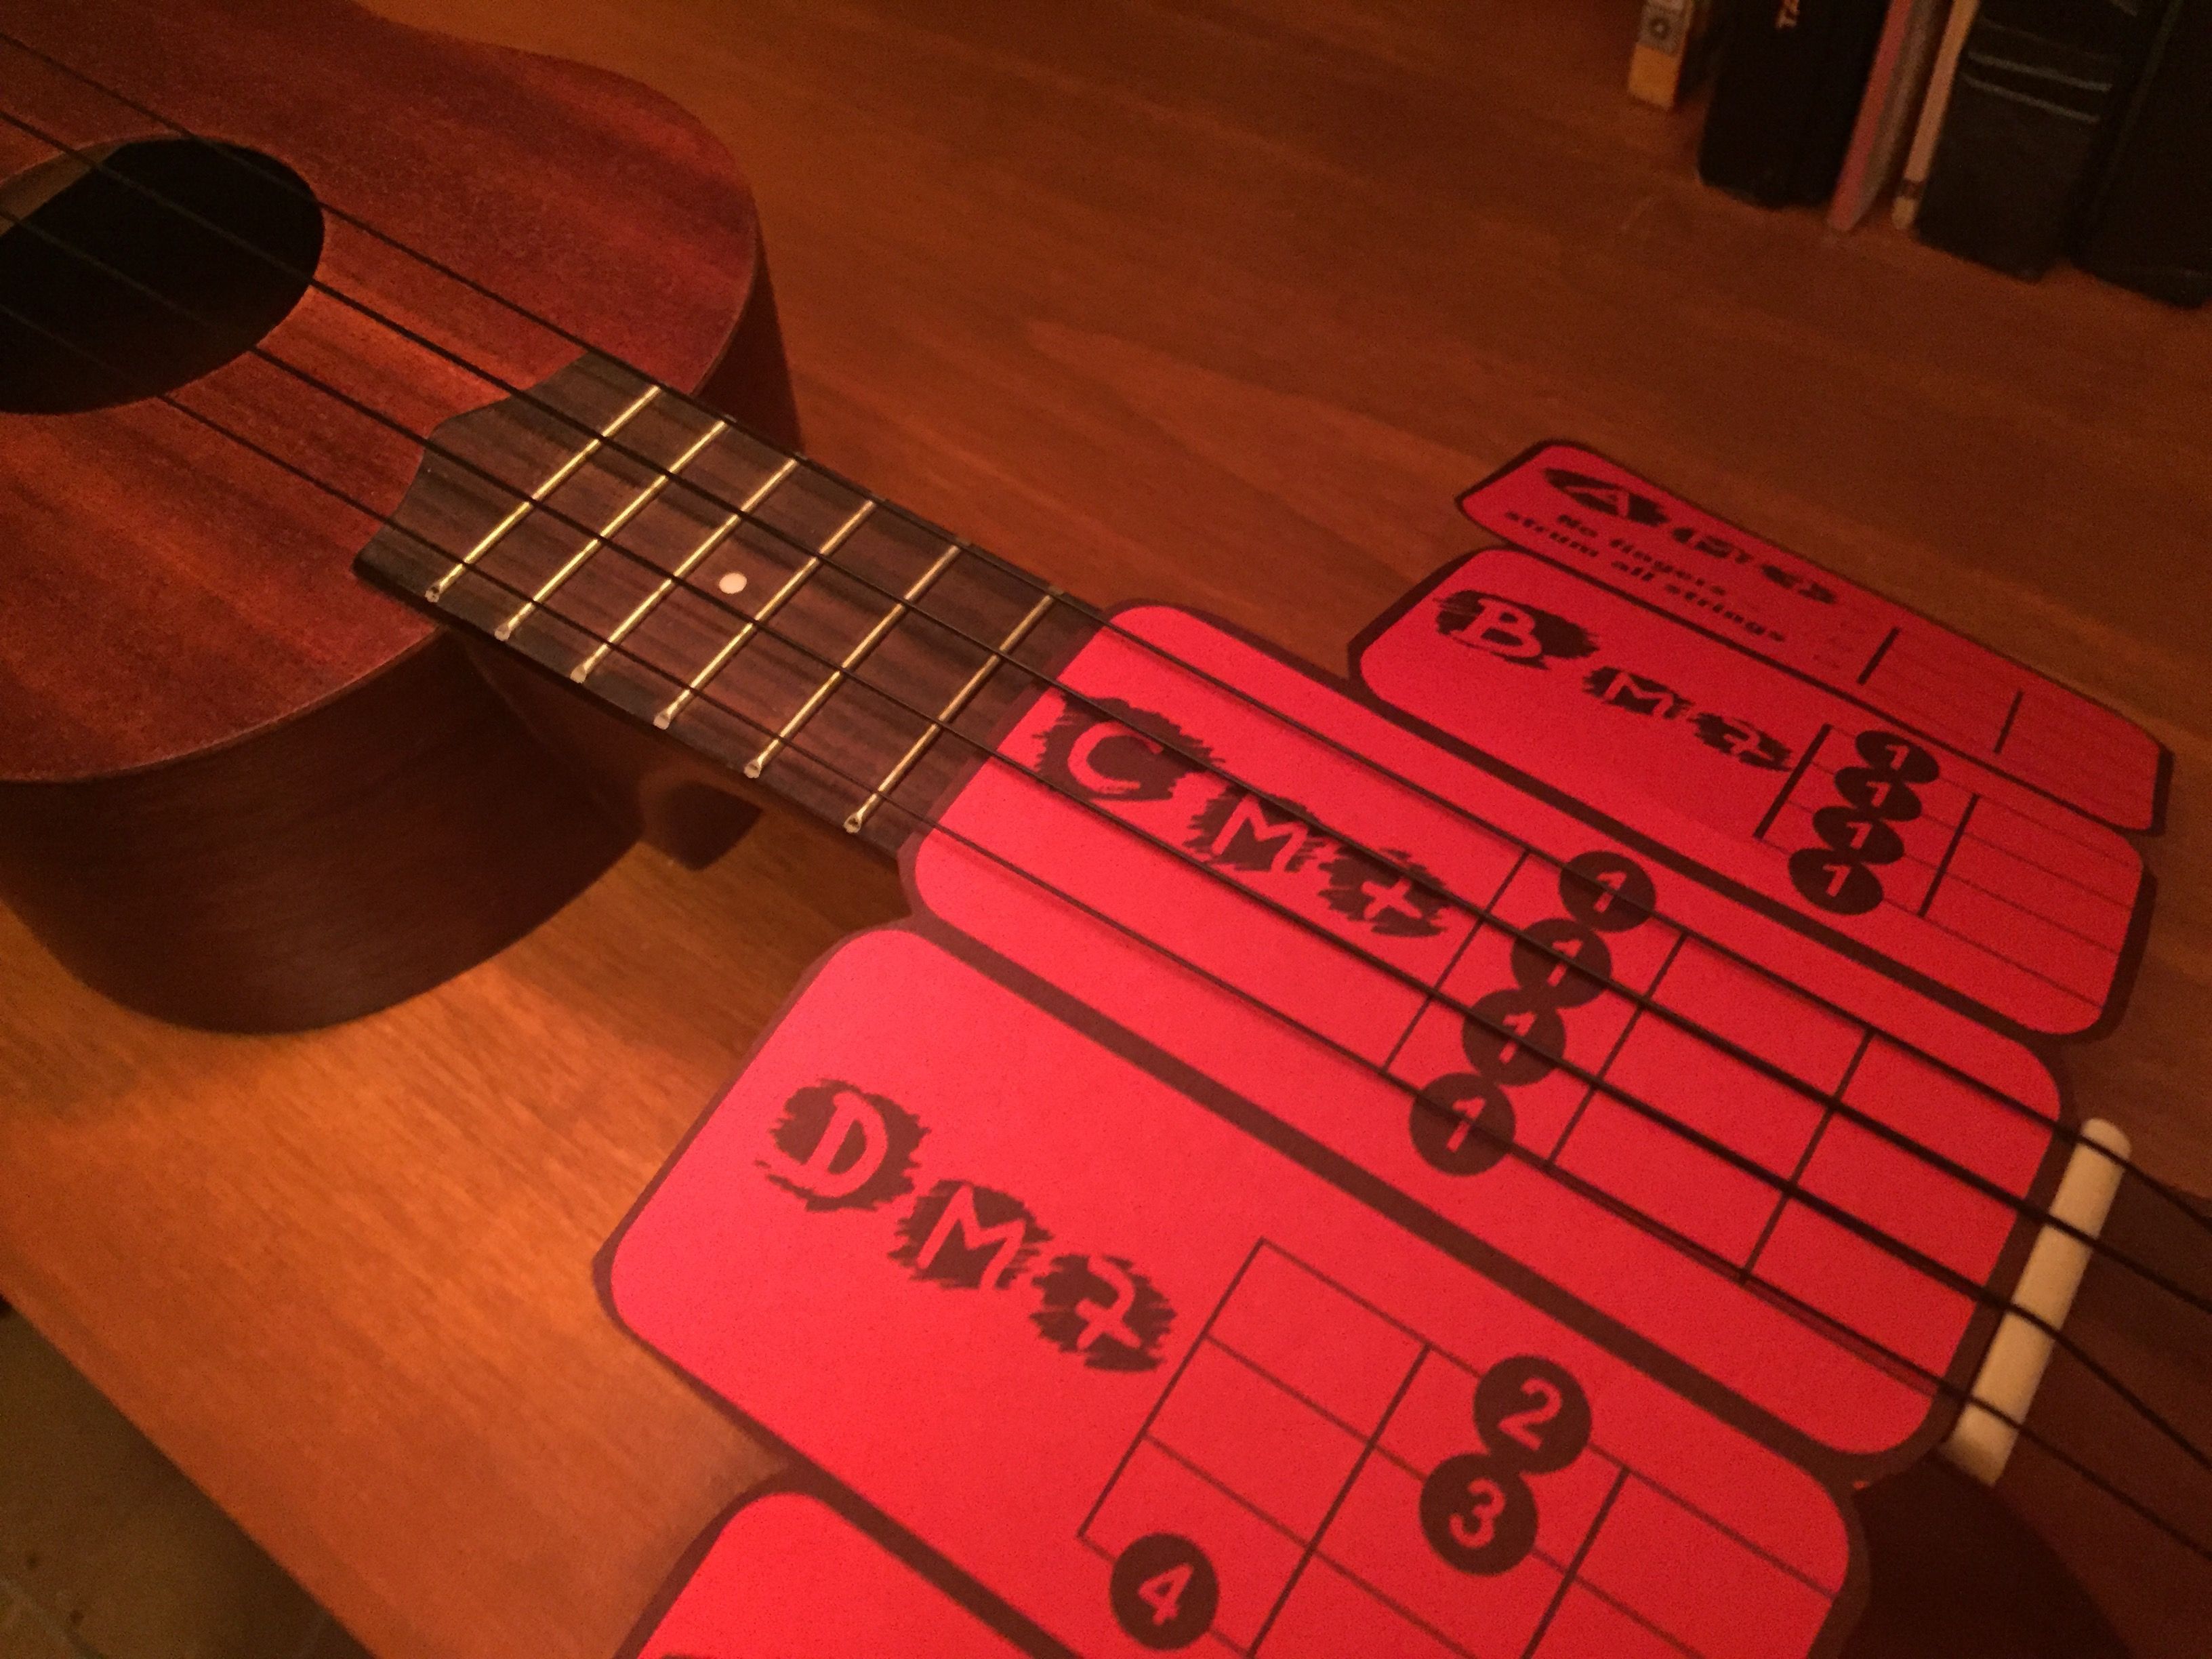 Ukulele Chord Sliders Fits Under Strings Soprano Baritone Together With How To String A Diagram On Note Are You Learning In Your Classroom Struggling Teach Students They Chords Using Standard Charts Sick Of Messy Stickers And Methods That